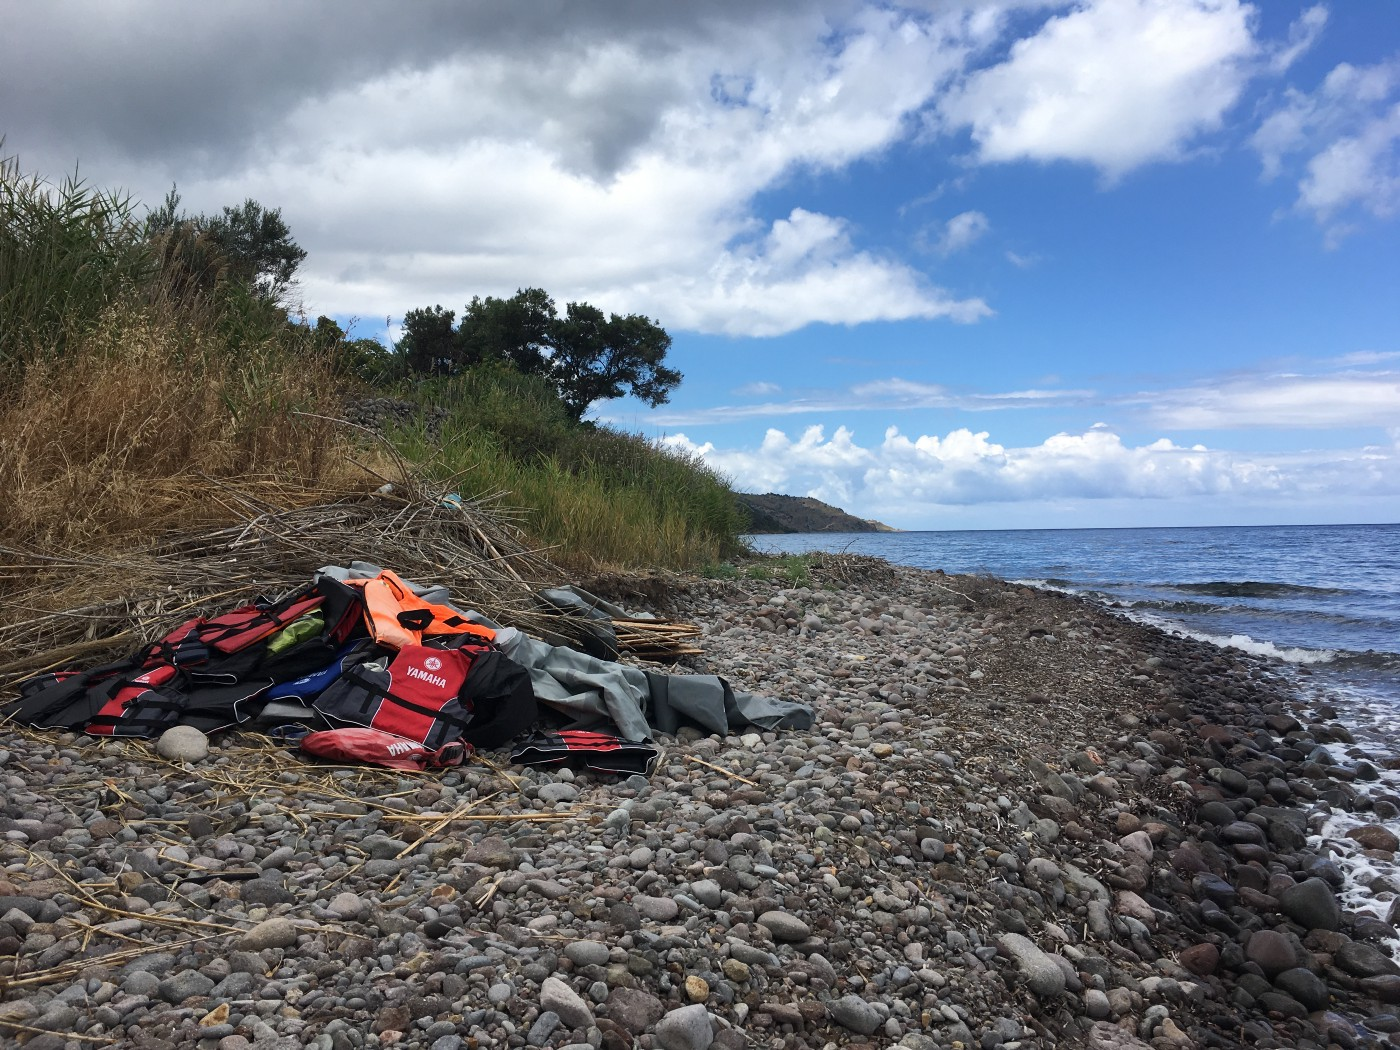 A pile of life jackets on the rocky shore of Lesbos.